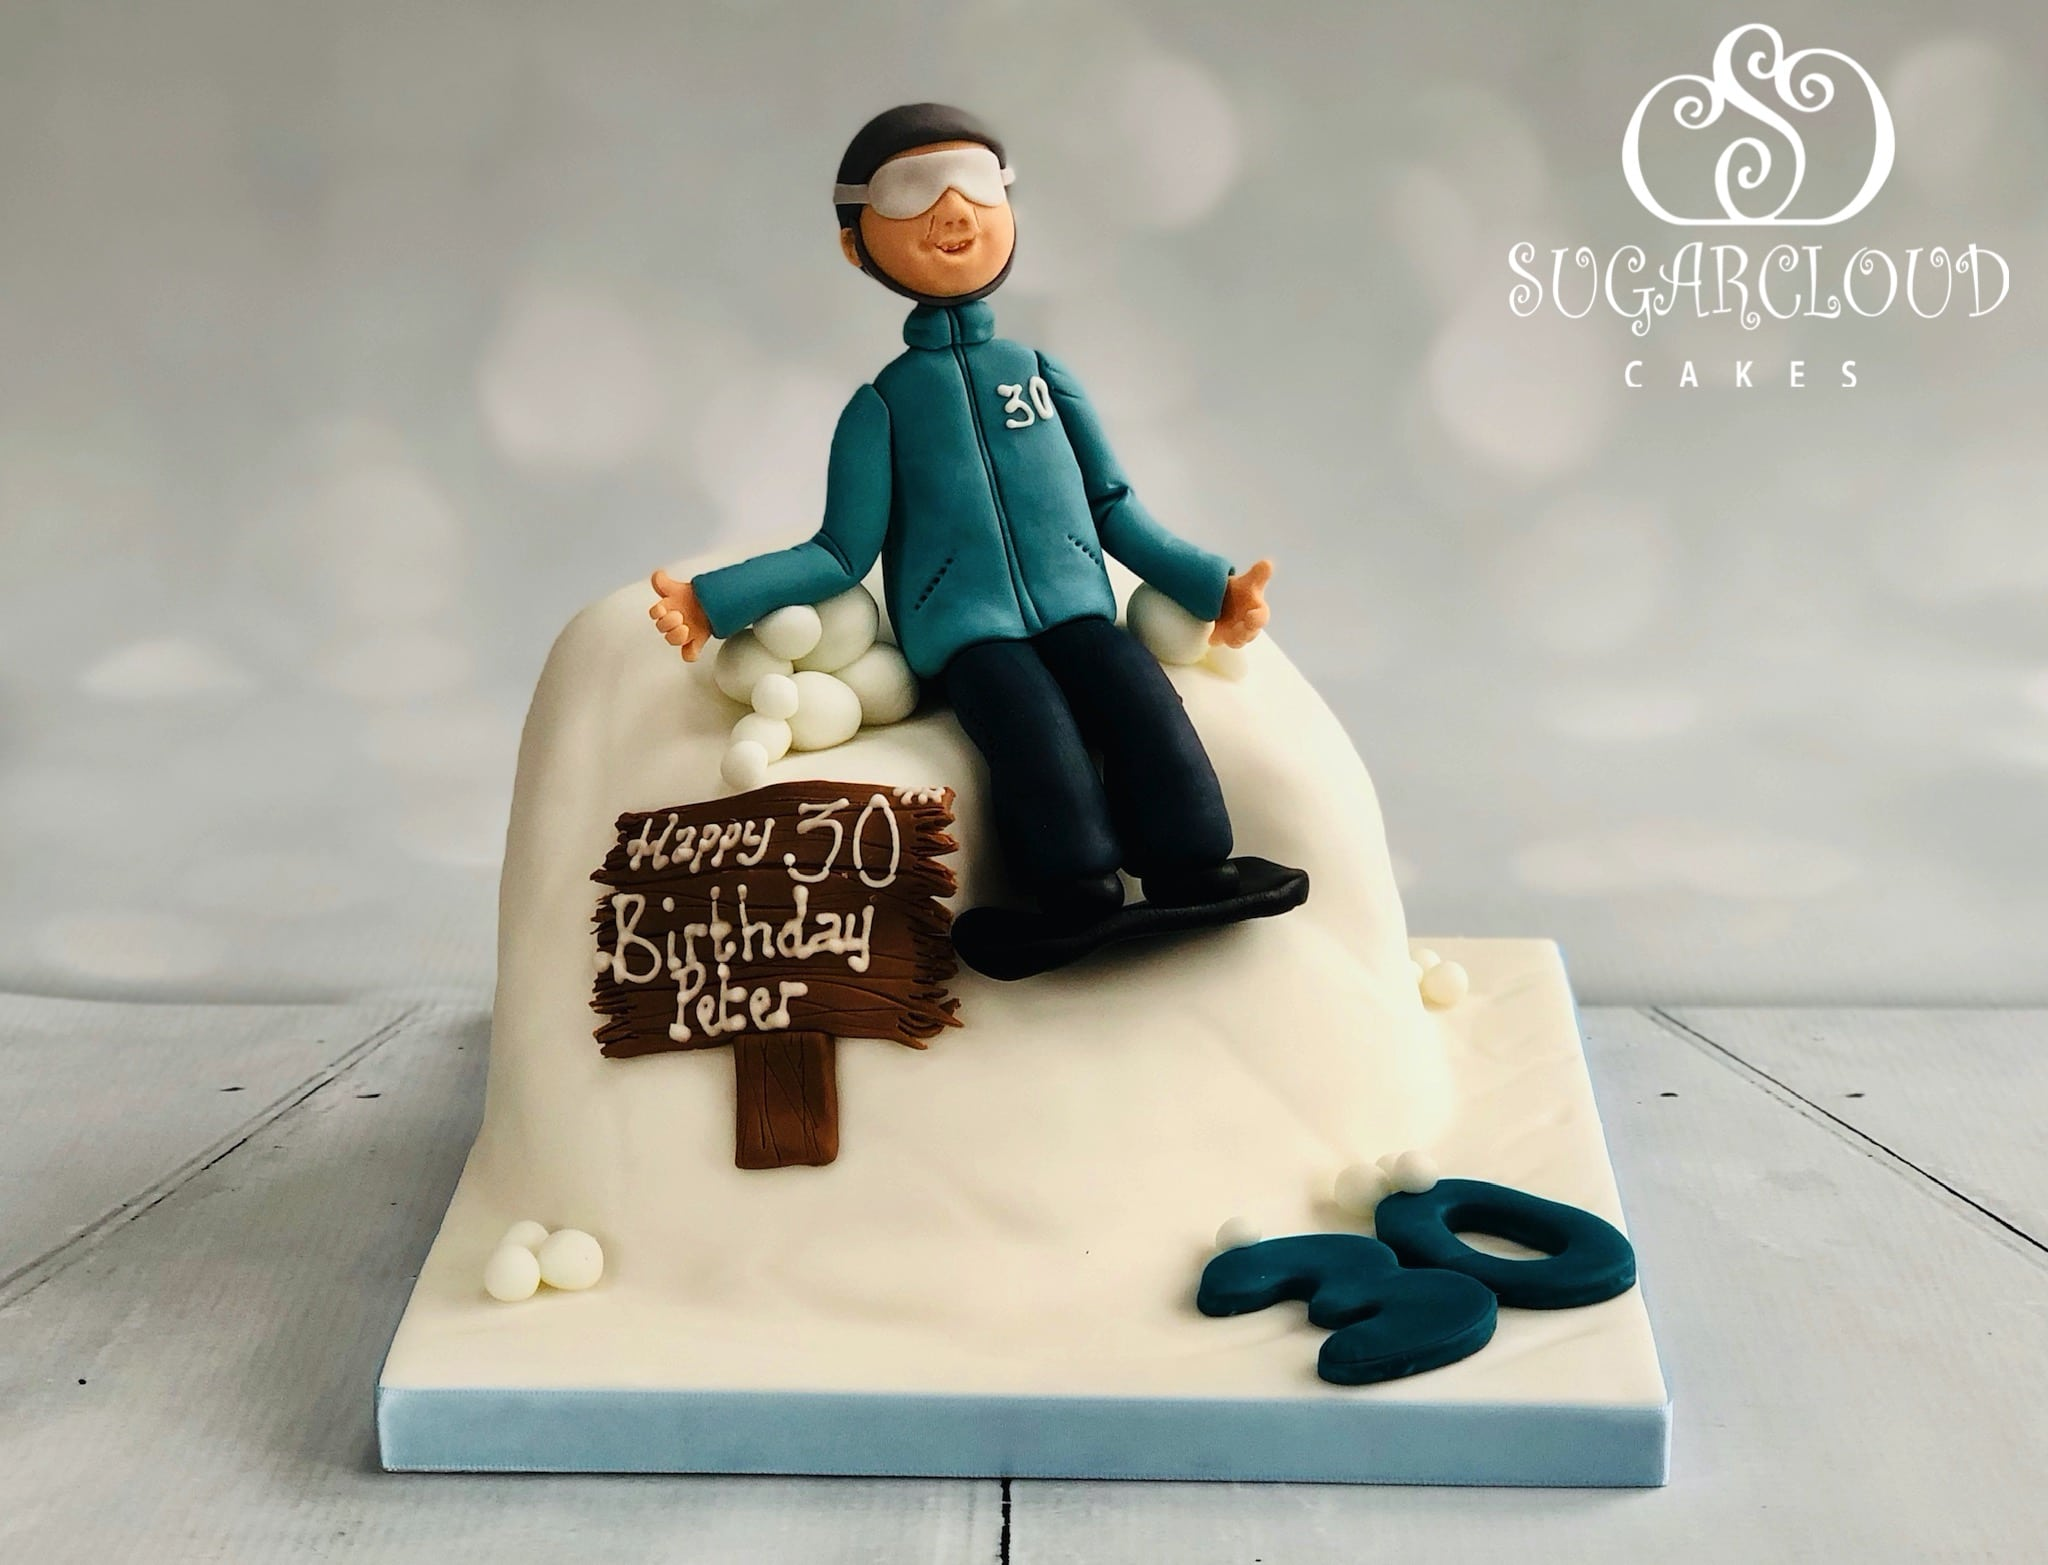 A Snowboarding Themed 30th Birthday Cake